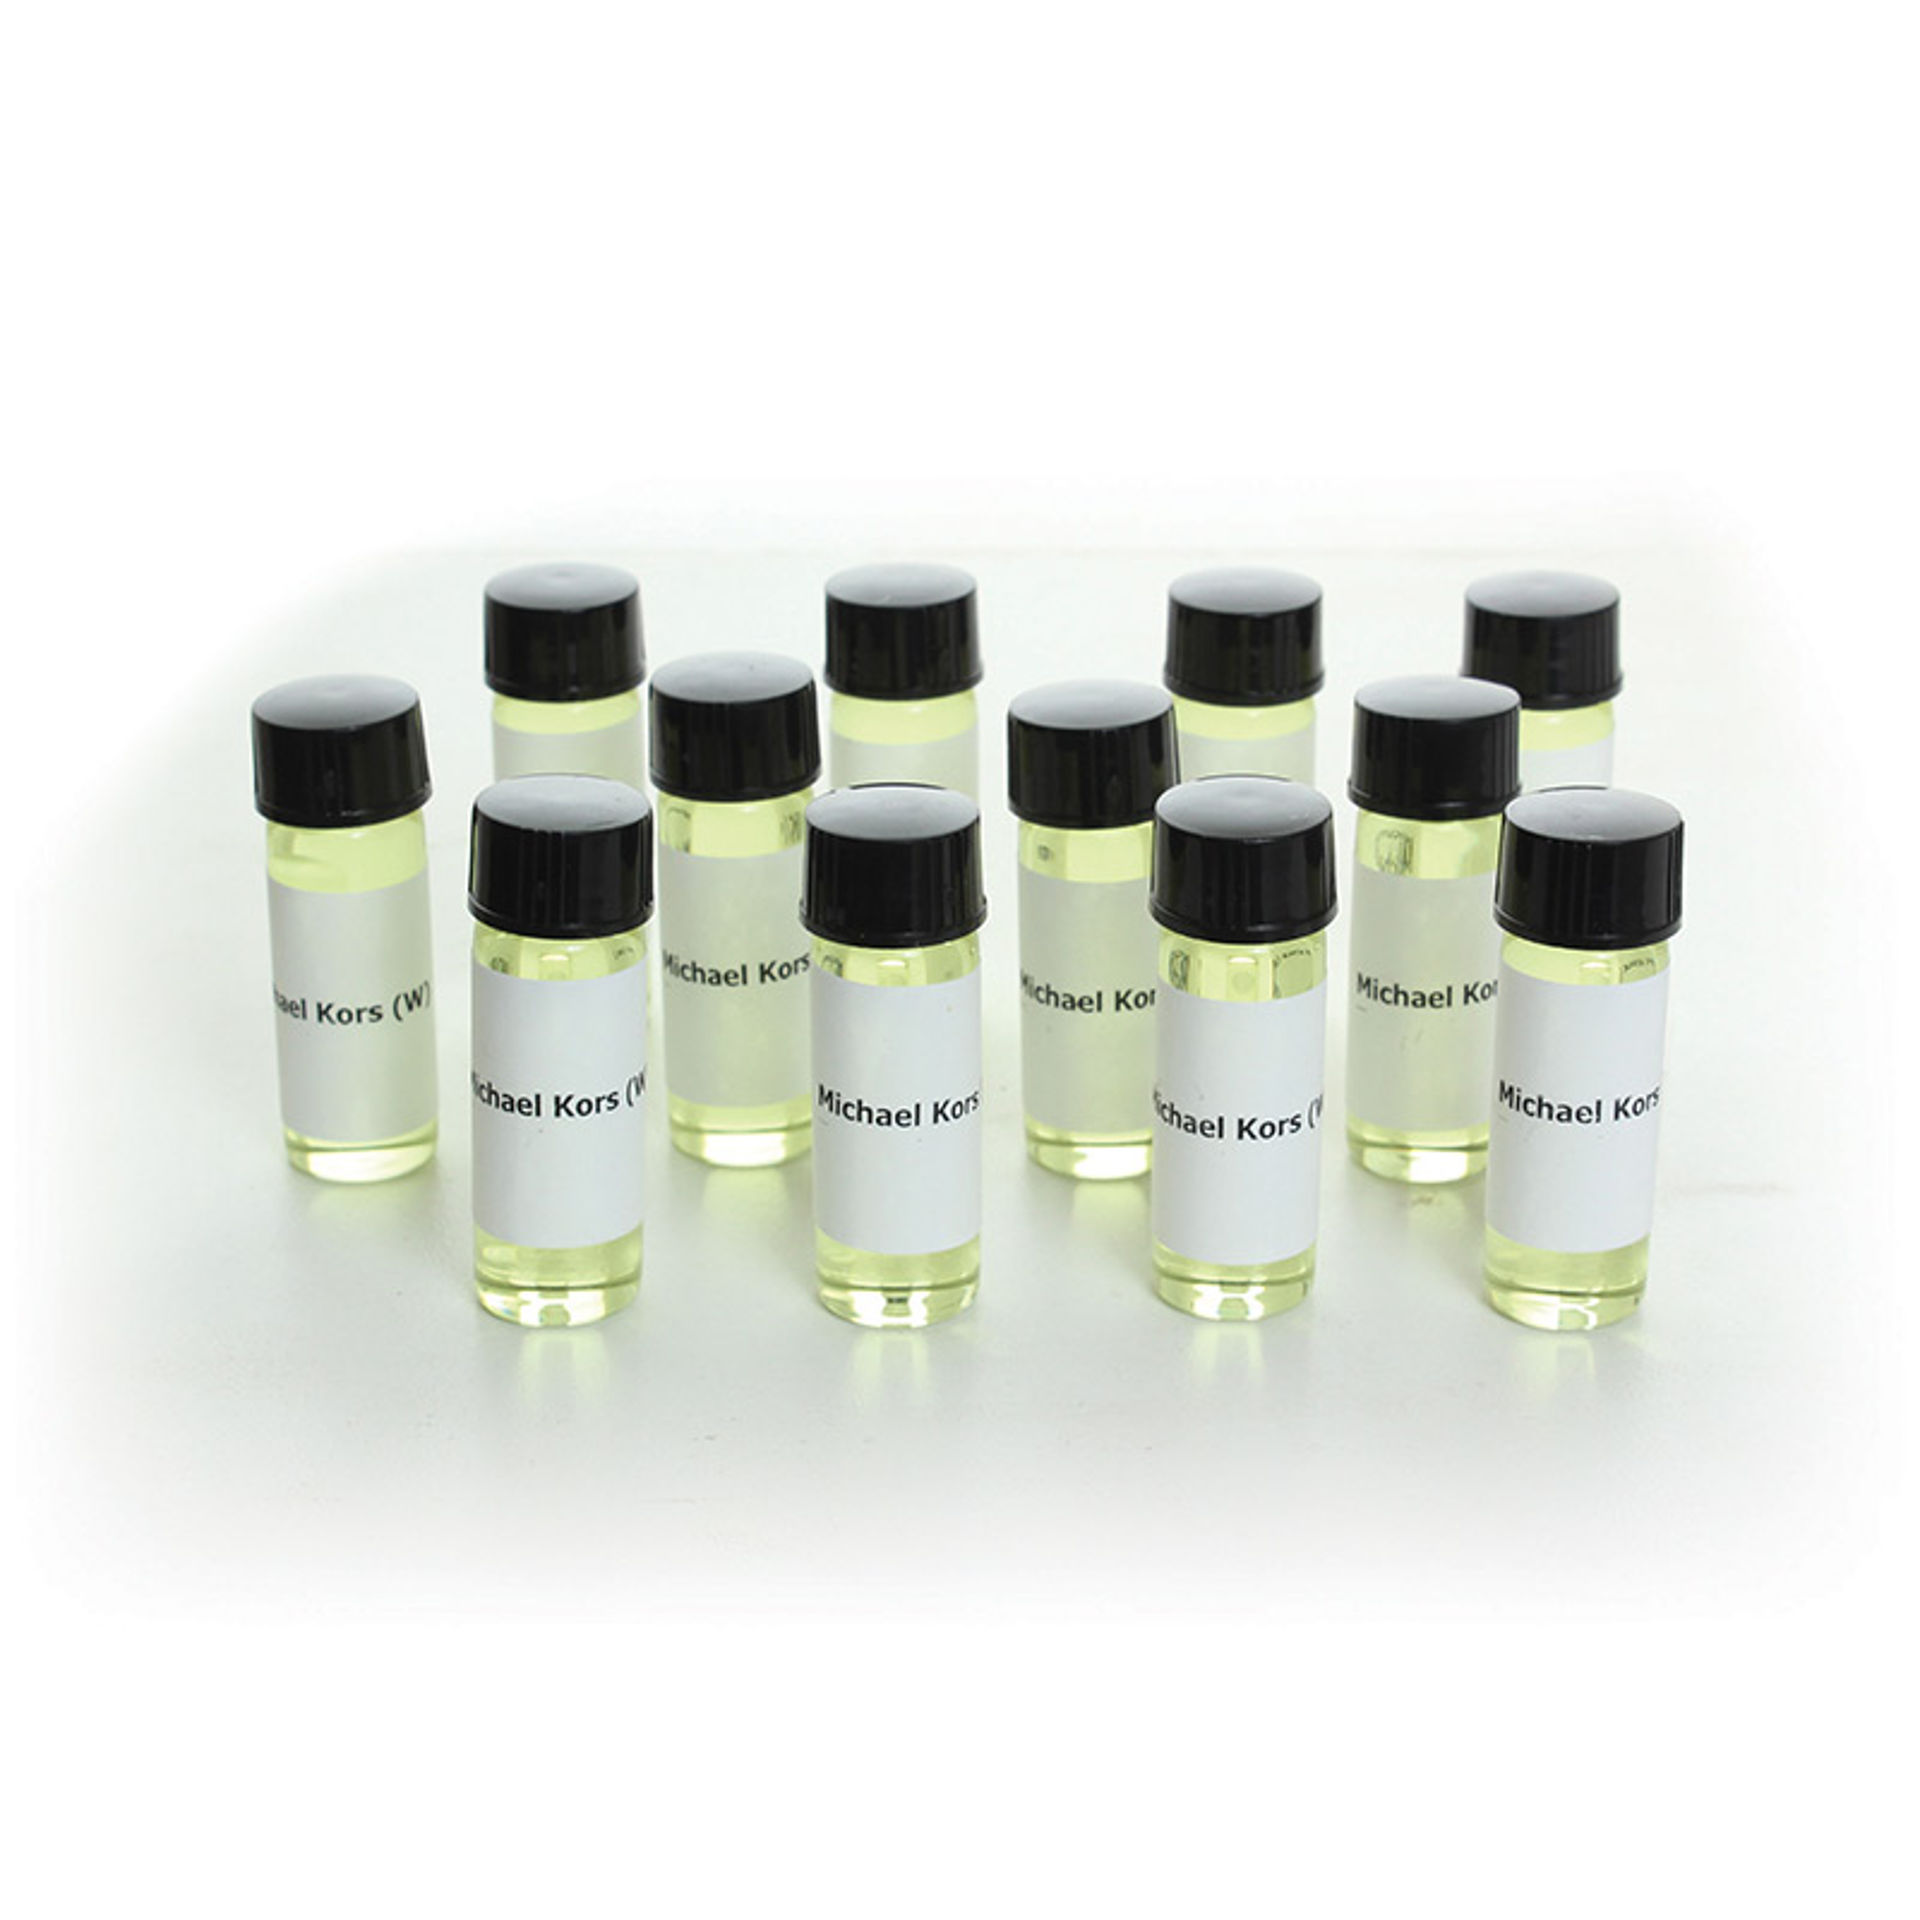 Picture of Set Of 12 Micheal Kors (W) Oils - Dram